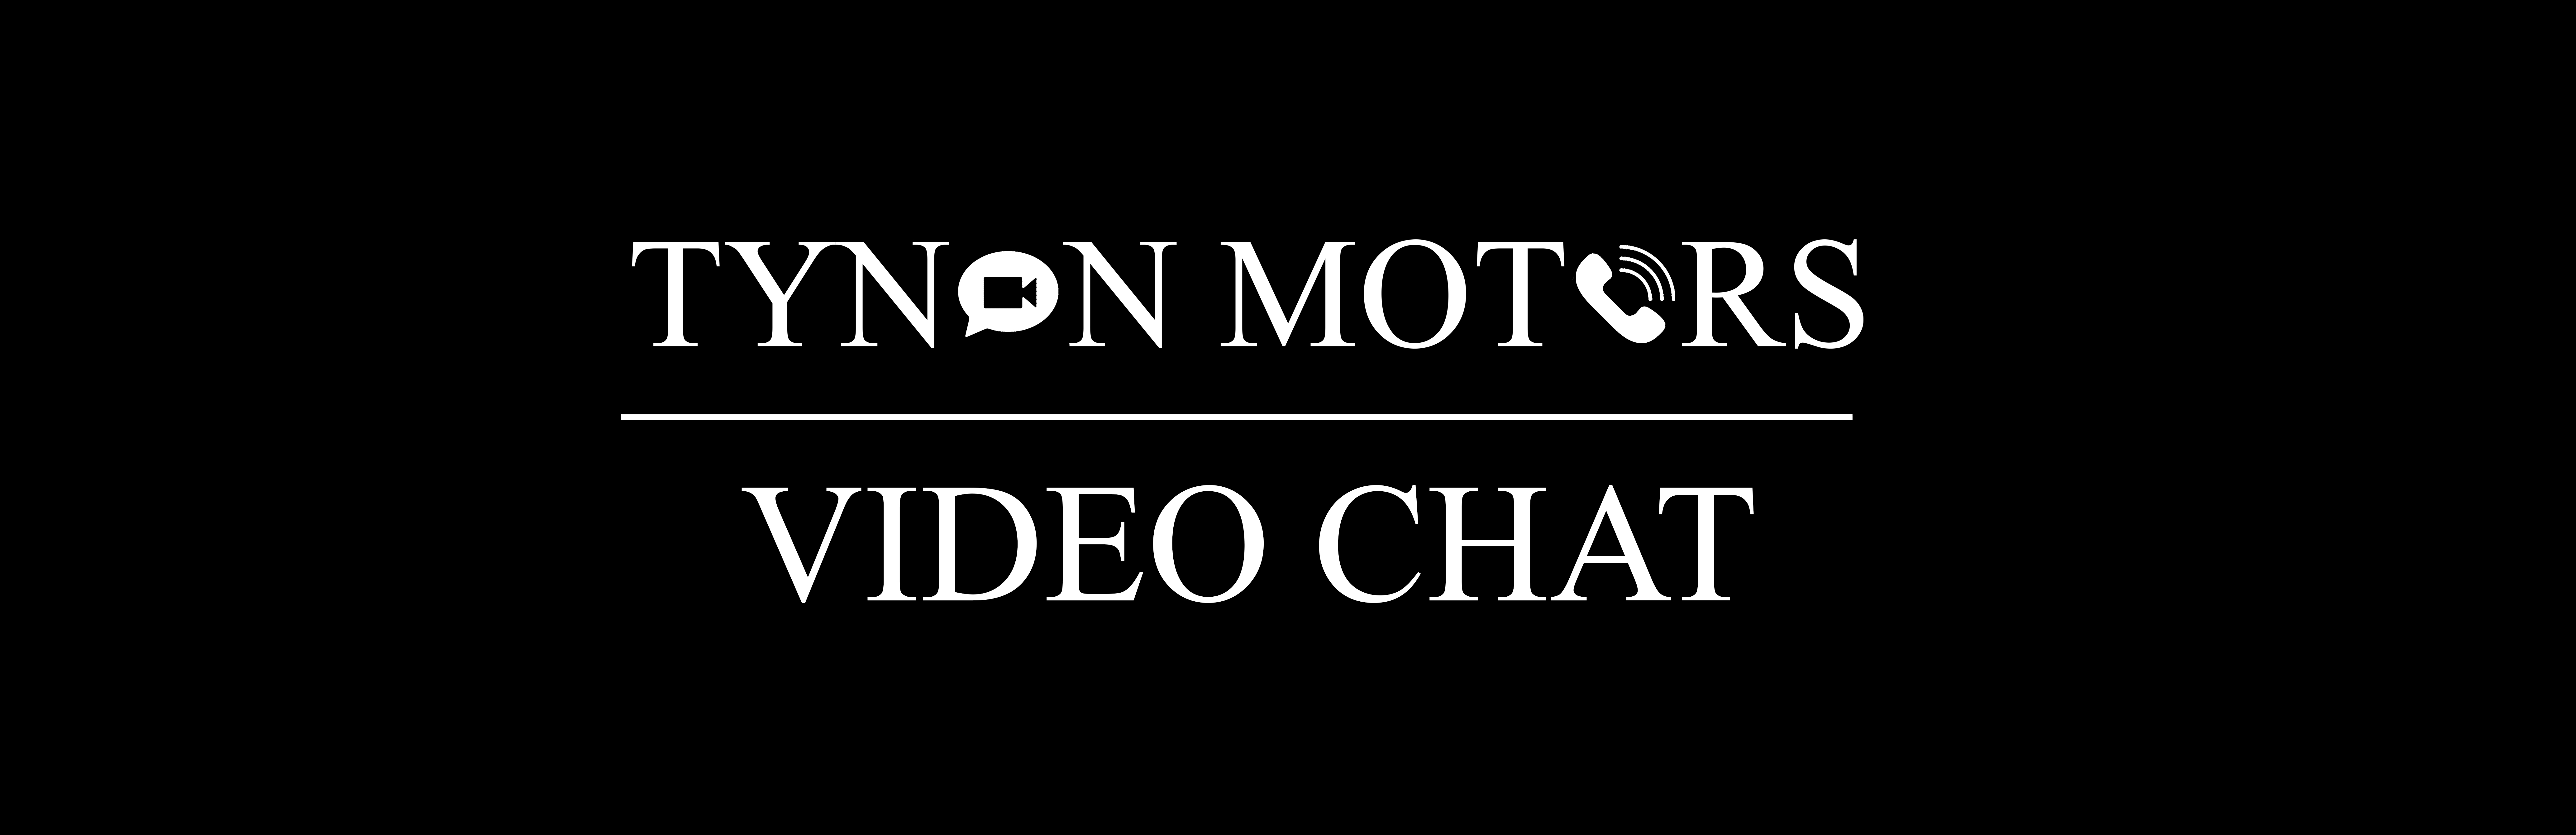 Video Chat NOW AVAILABLE